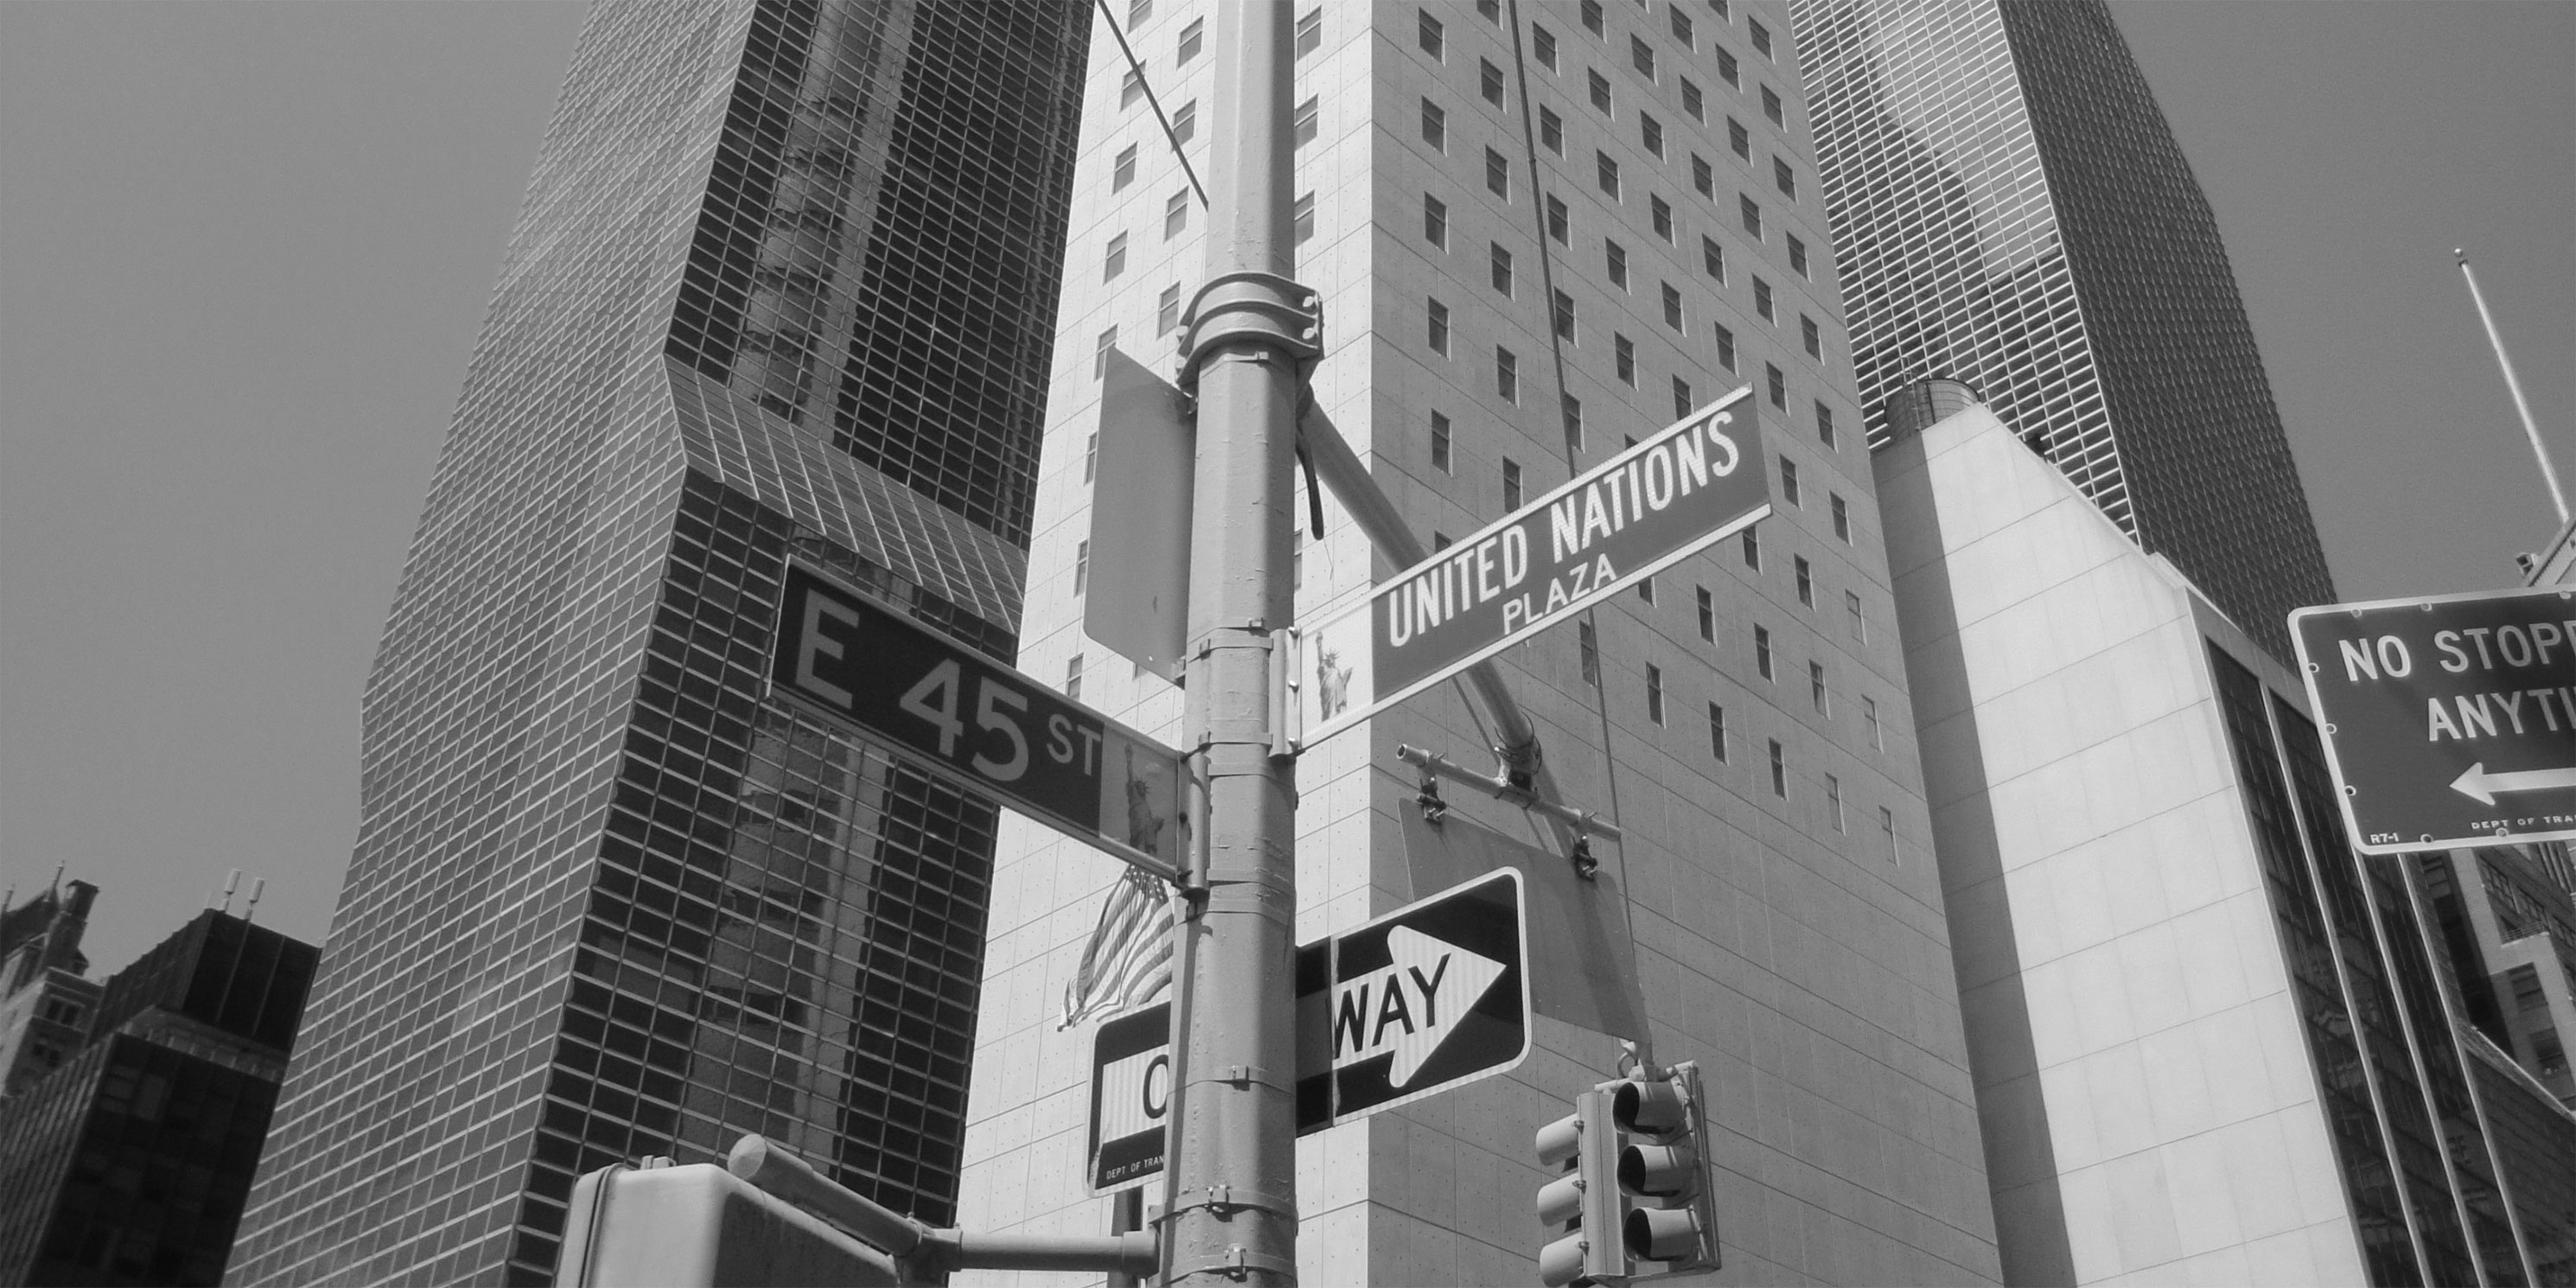 Street signs for the corner of East 45th Street and United Nations Plaza in Manhattan. Photo: Wikimedia Commons, Banfield.